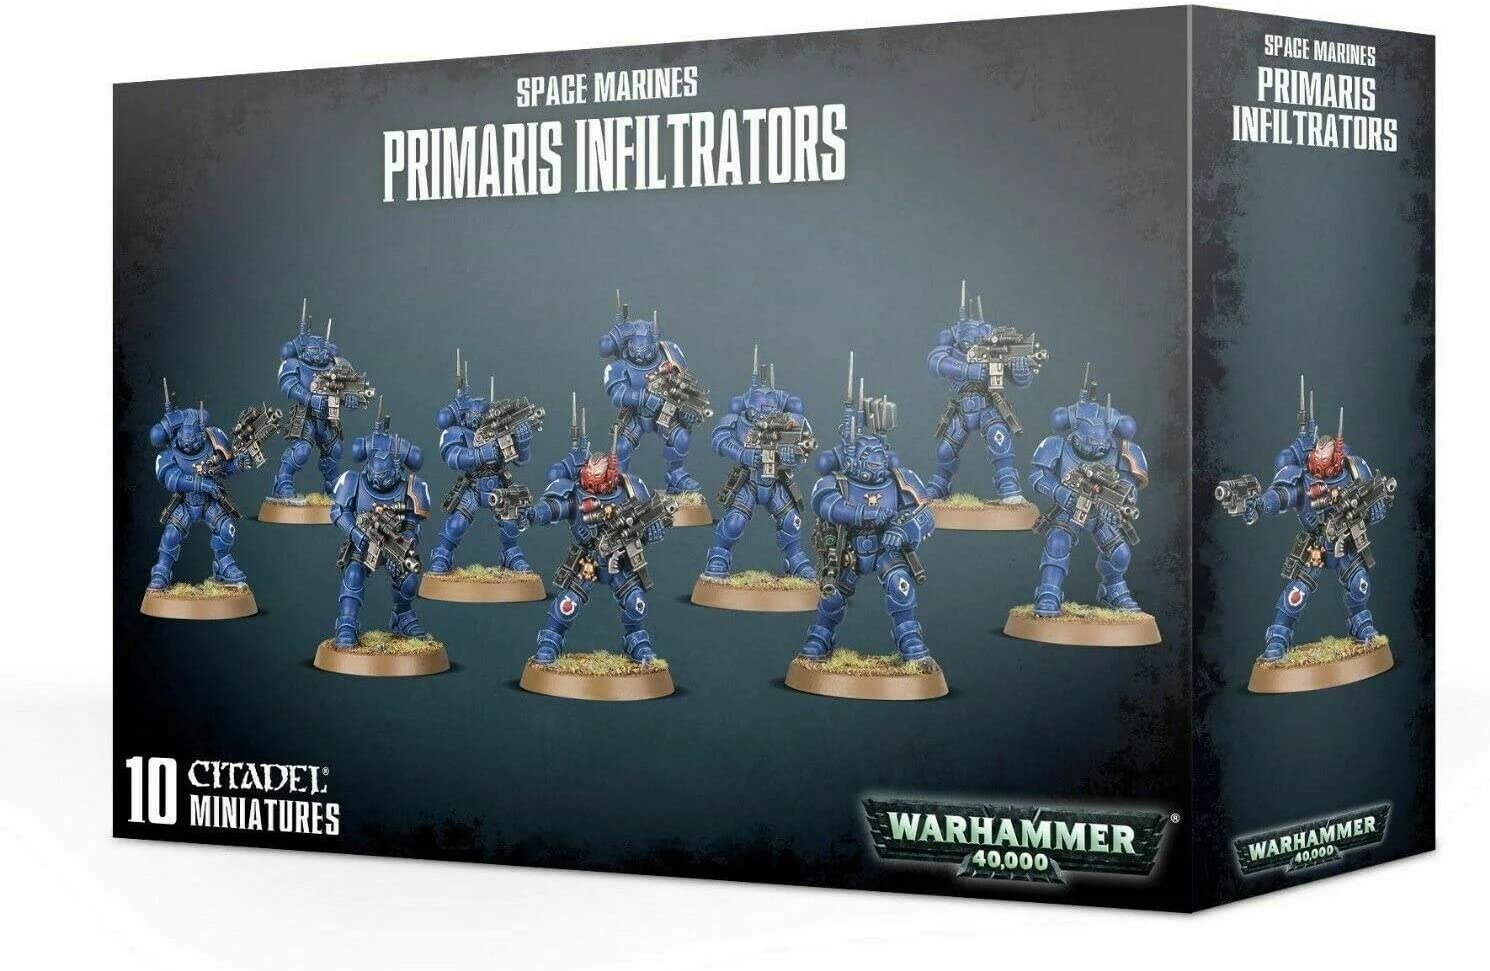 Games Workshop Warhammer 40,000: Space Marines PRIMARIS INFILTRATORS